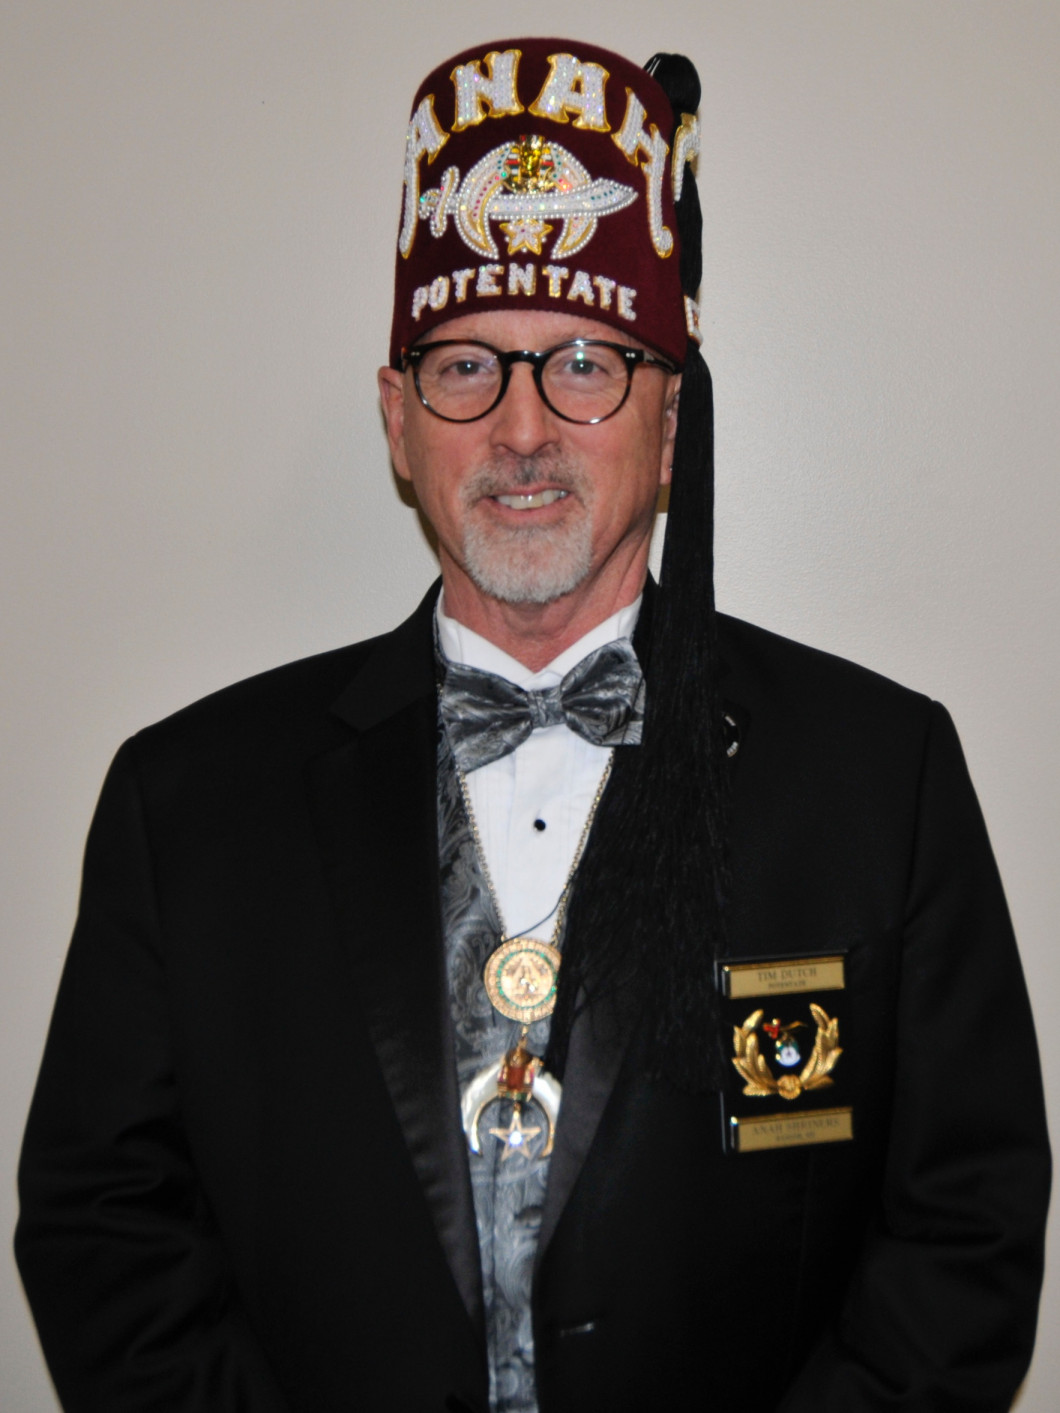 Illustrious Potentate Anah Shrine 2020 Sir Timothy Dryden Dutch